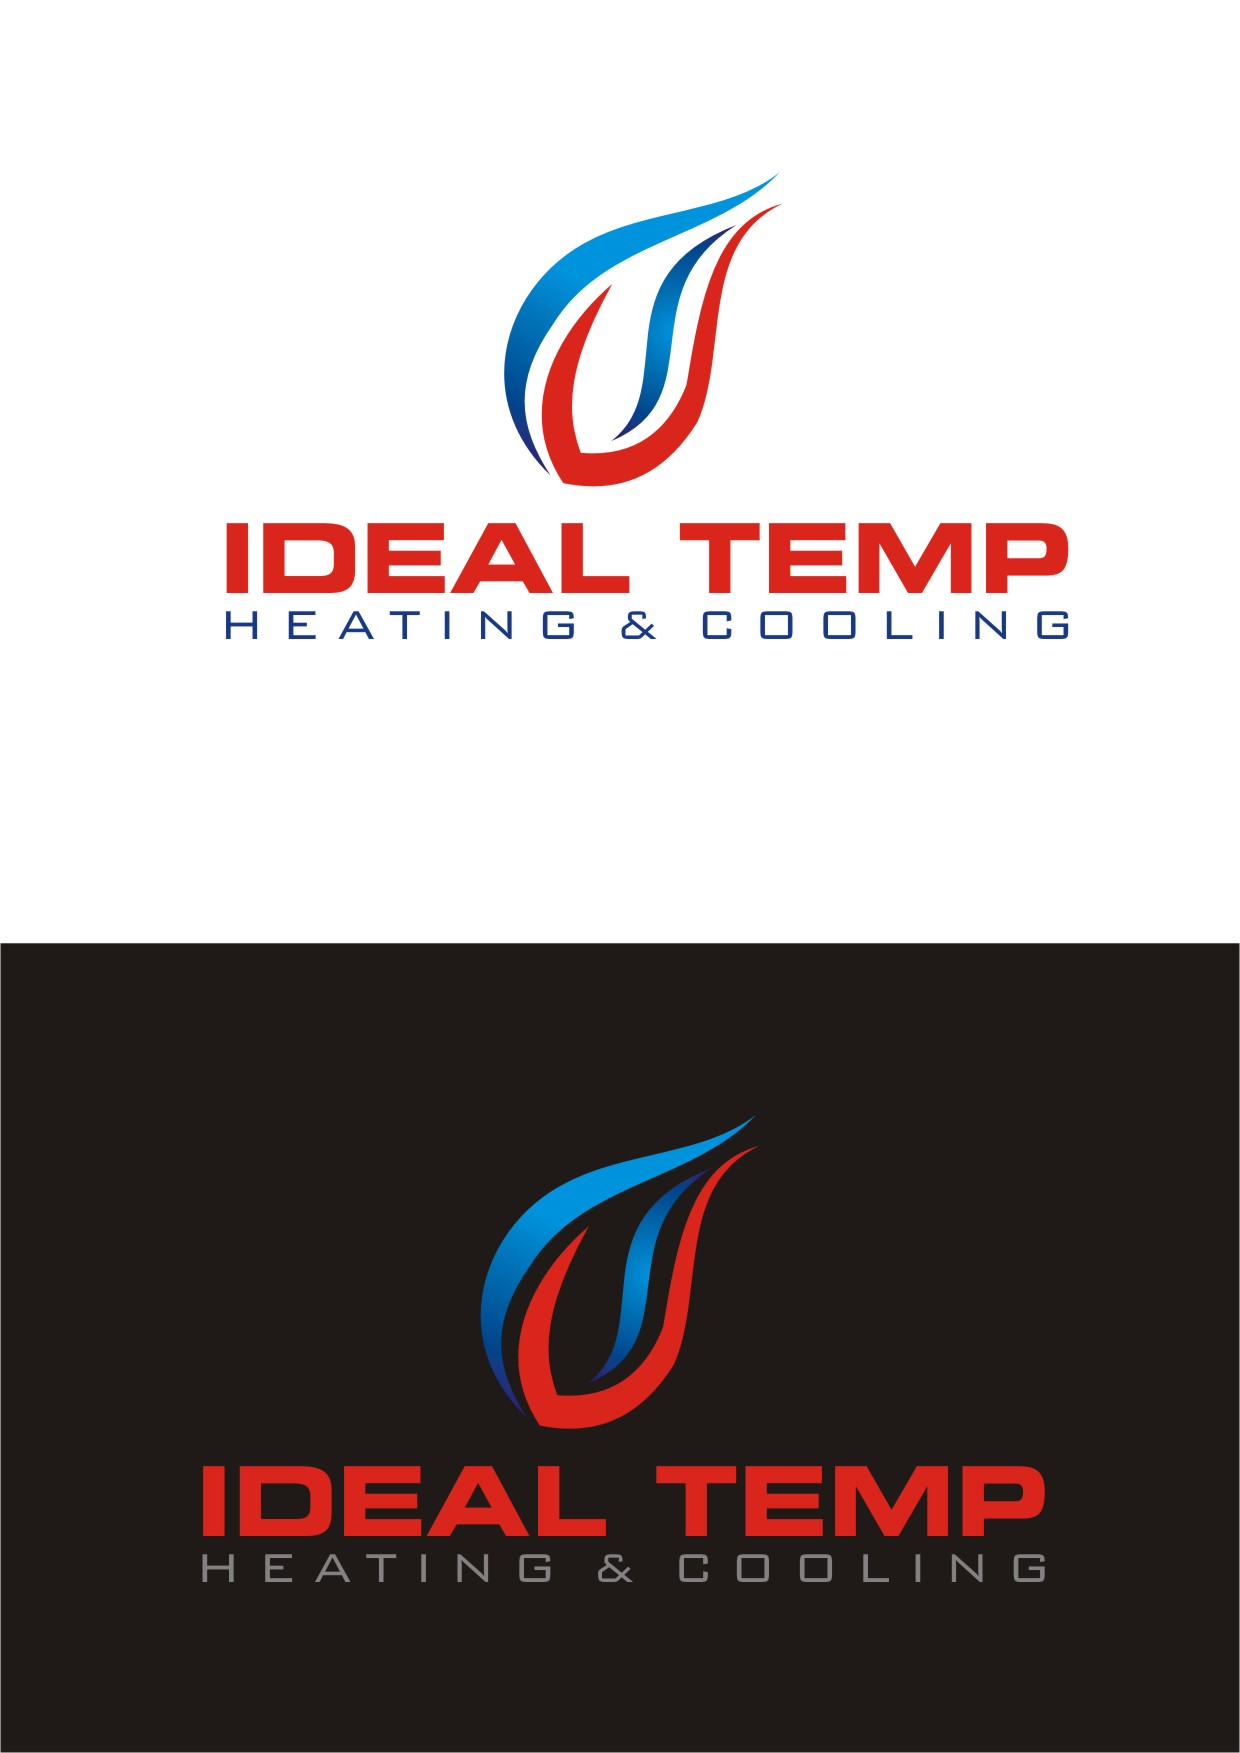 Logo Design by Lynx Graphics - Entry No. 240 in the Logo Design Contest Captivating Logo Design for Ideal Temp.